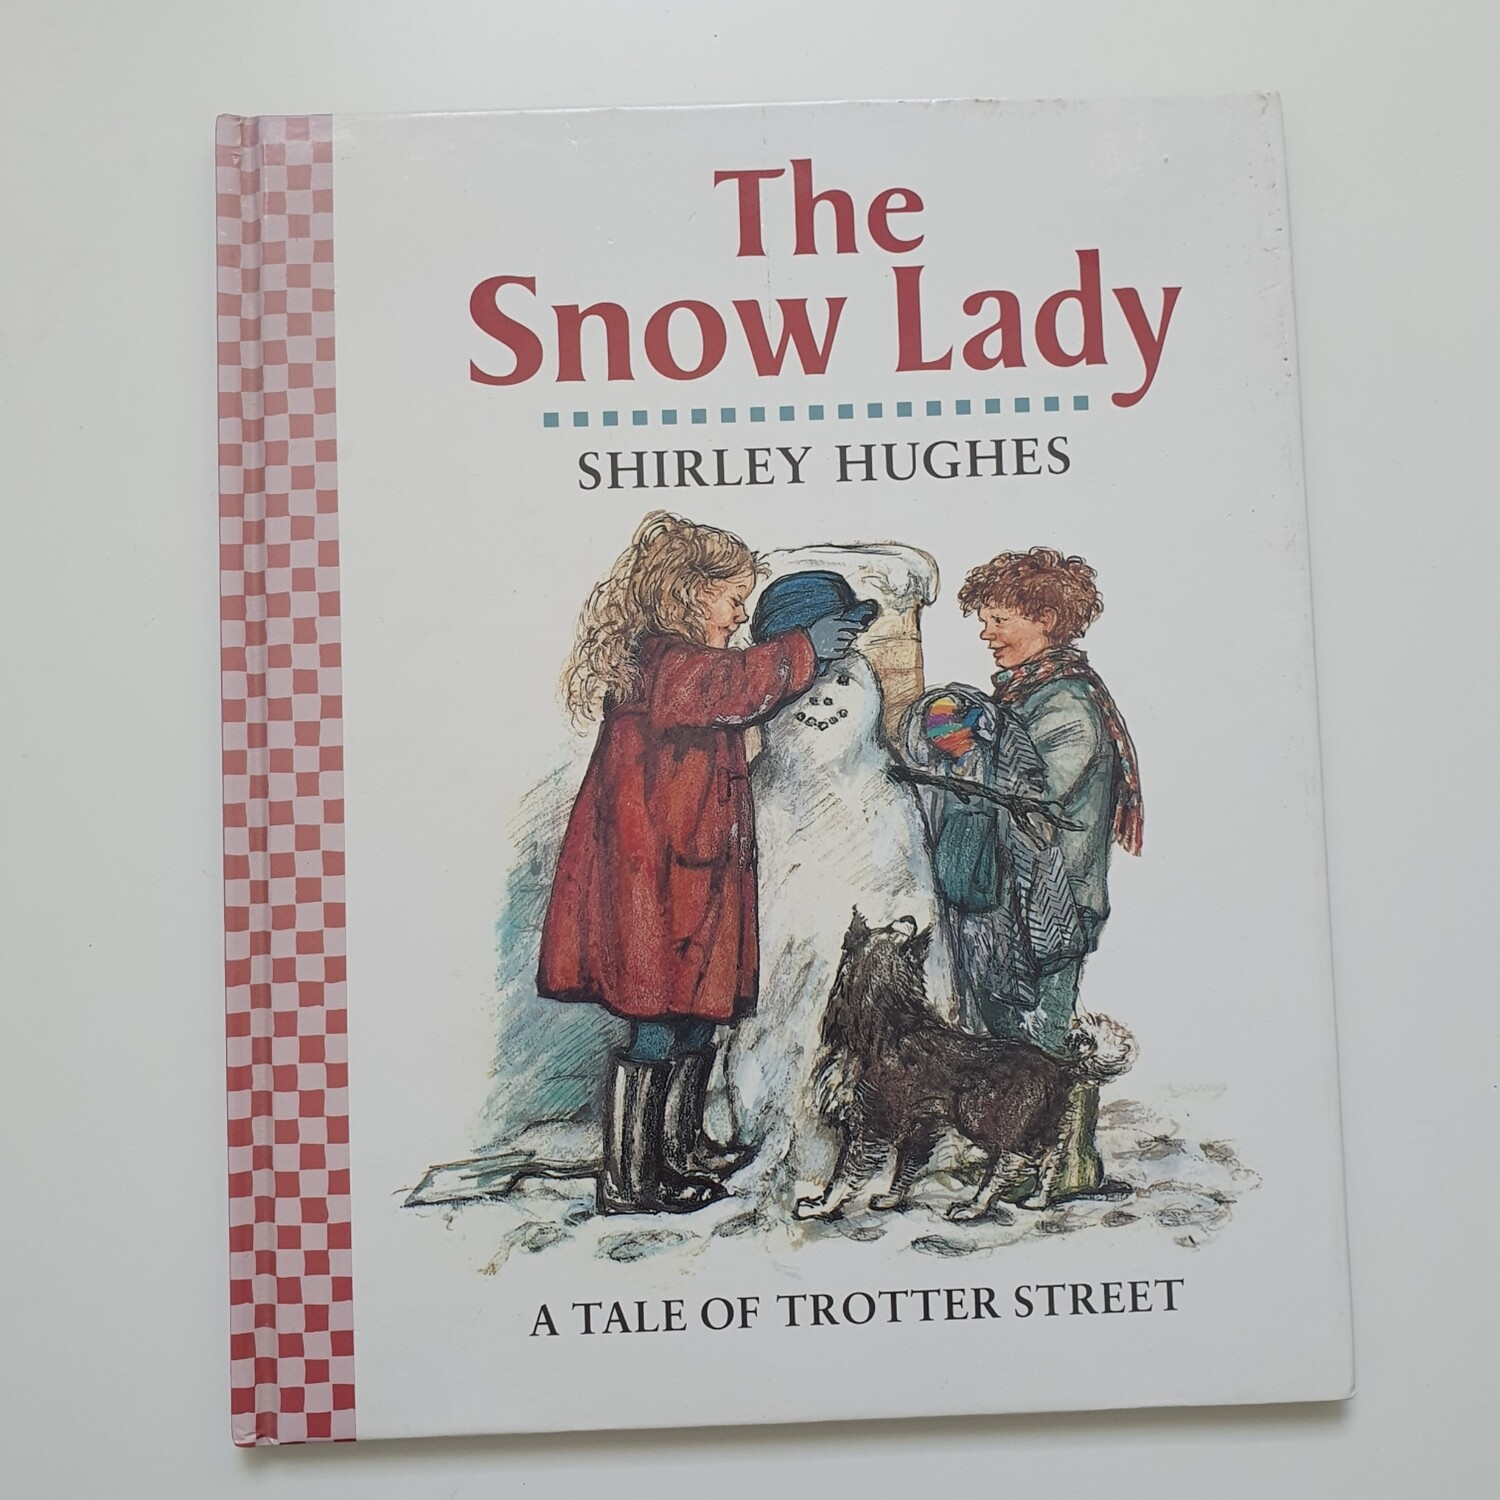 The Snow Lady by Shirley Hughes